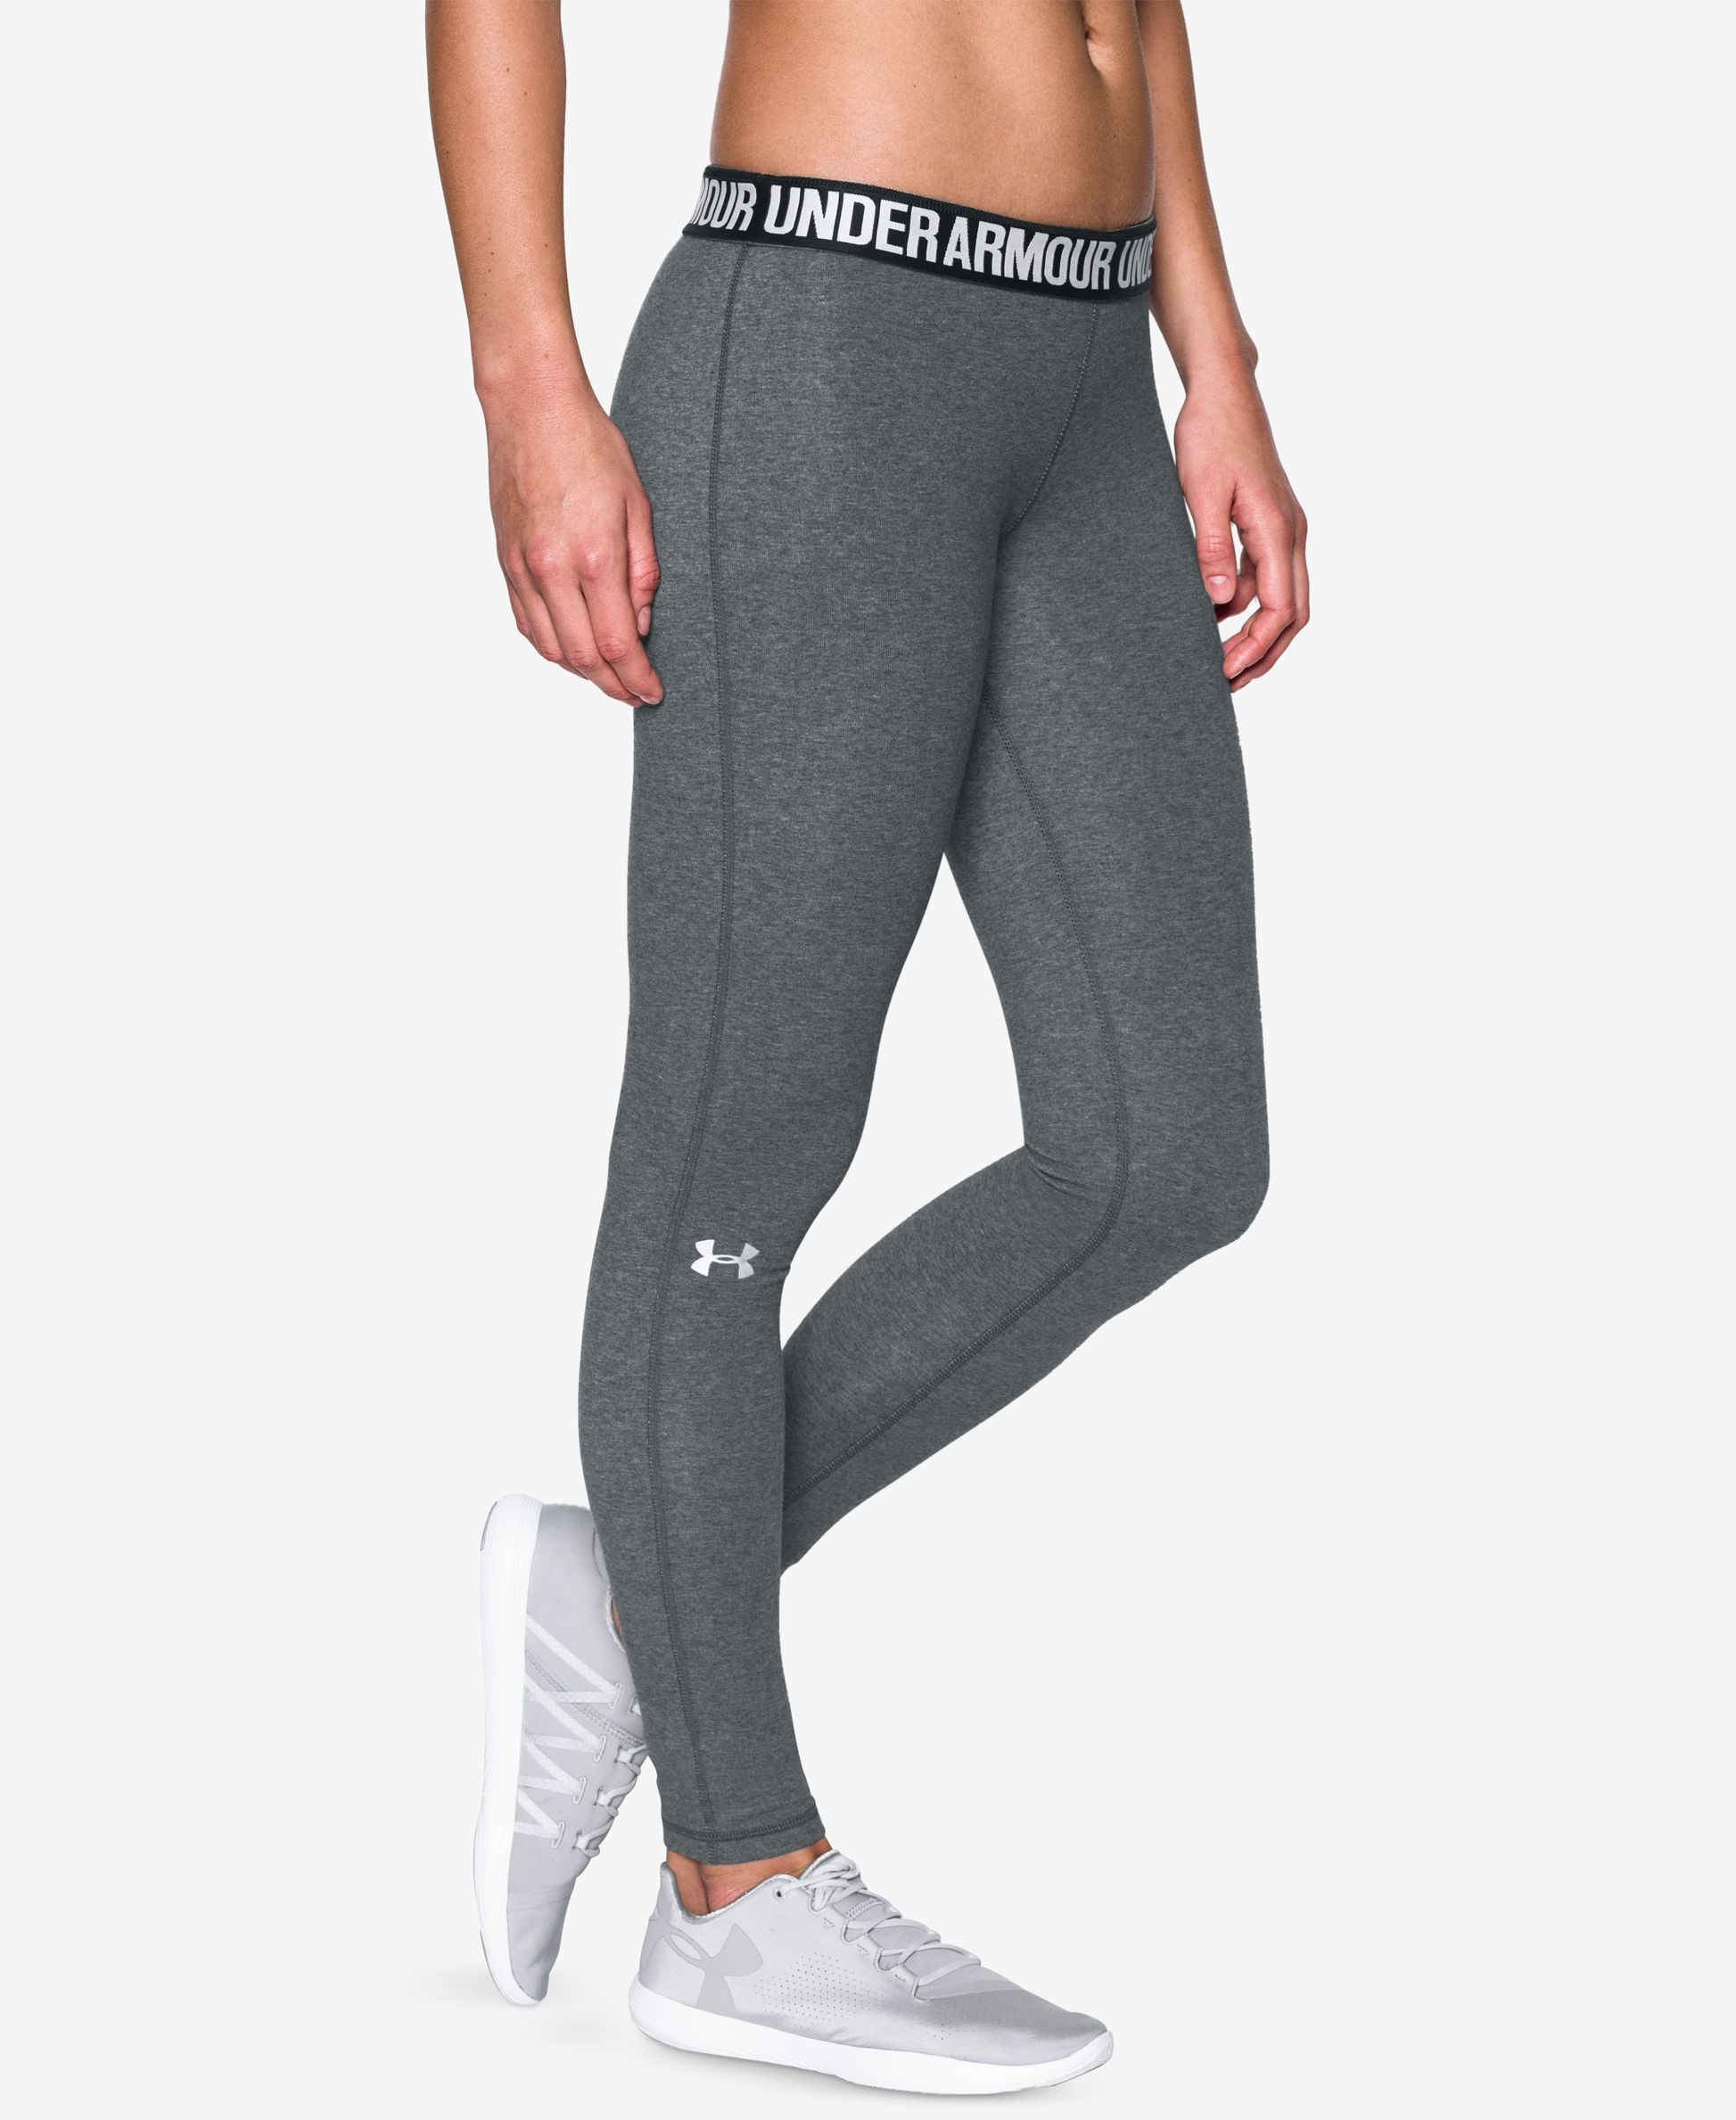 Women Yoga Sweat Pants Spandex Cotton Sports Fitness Capri Leggings Gray M